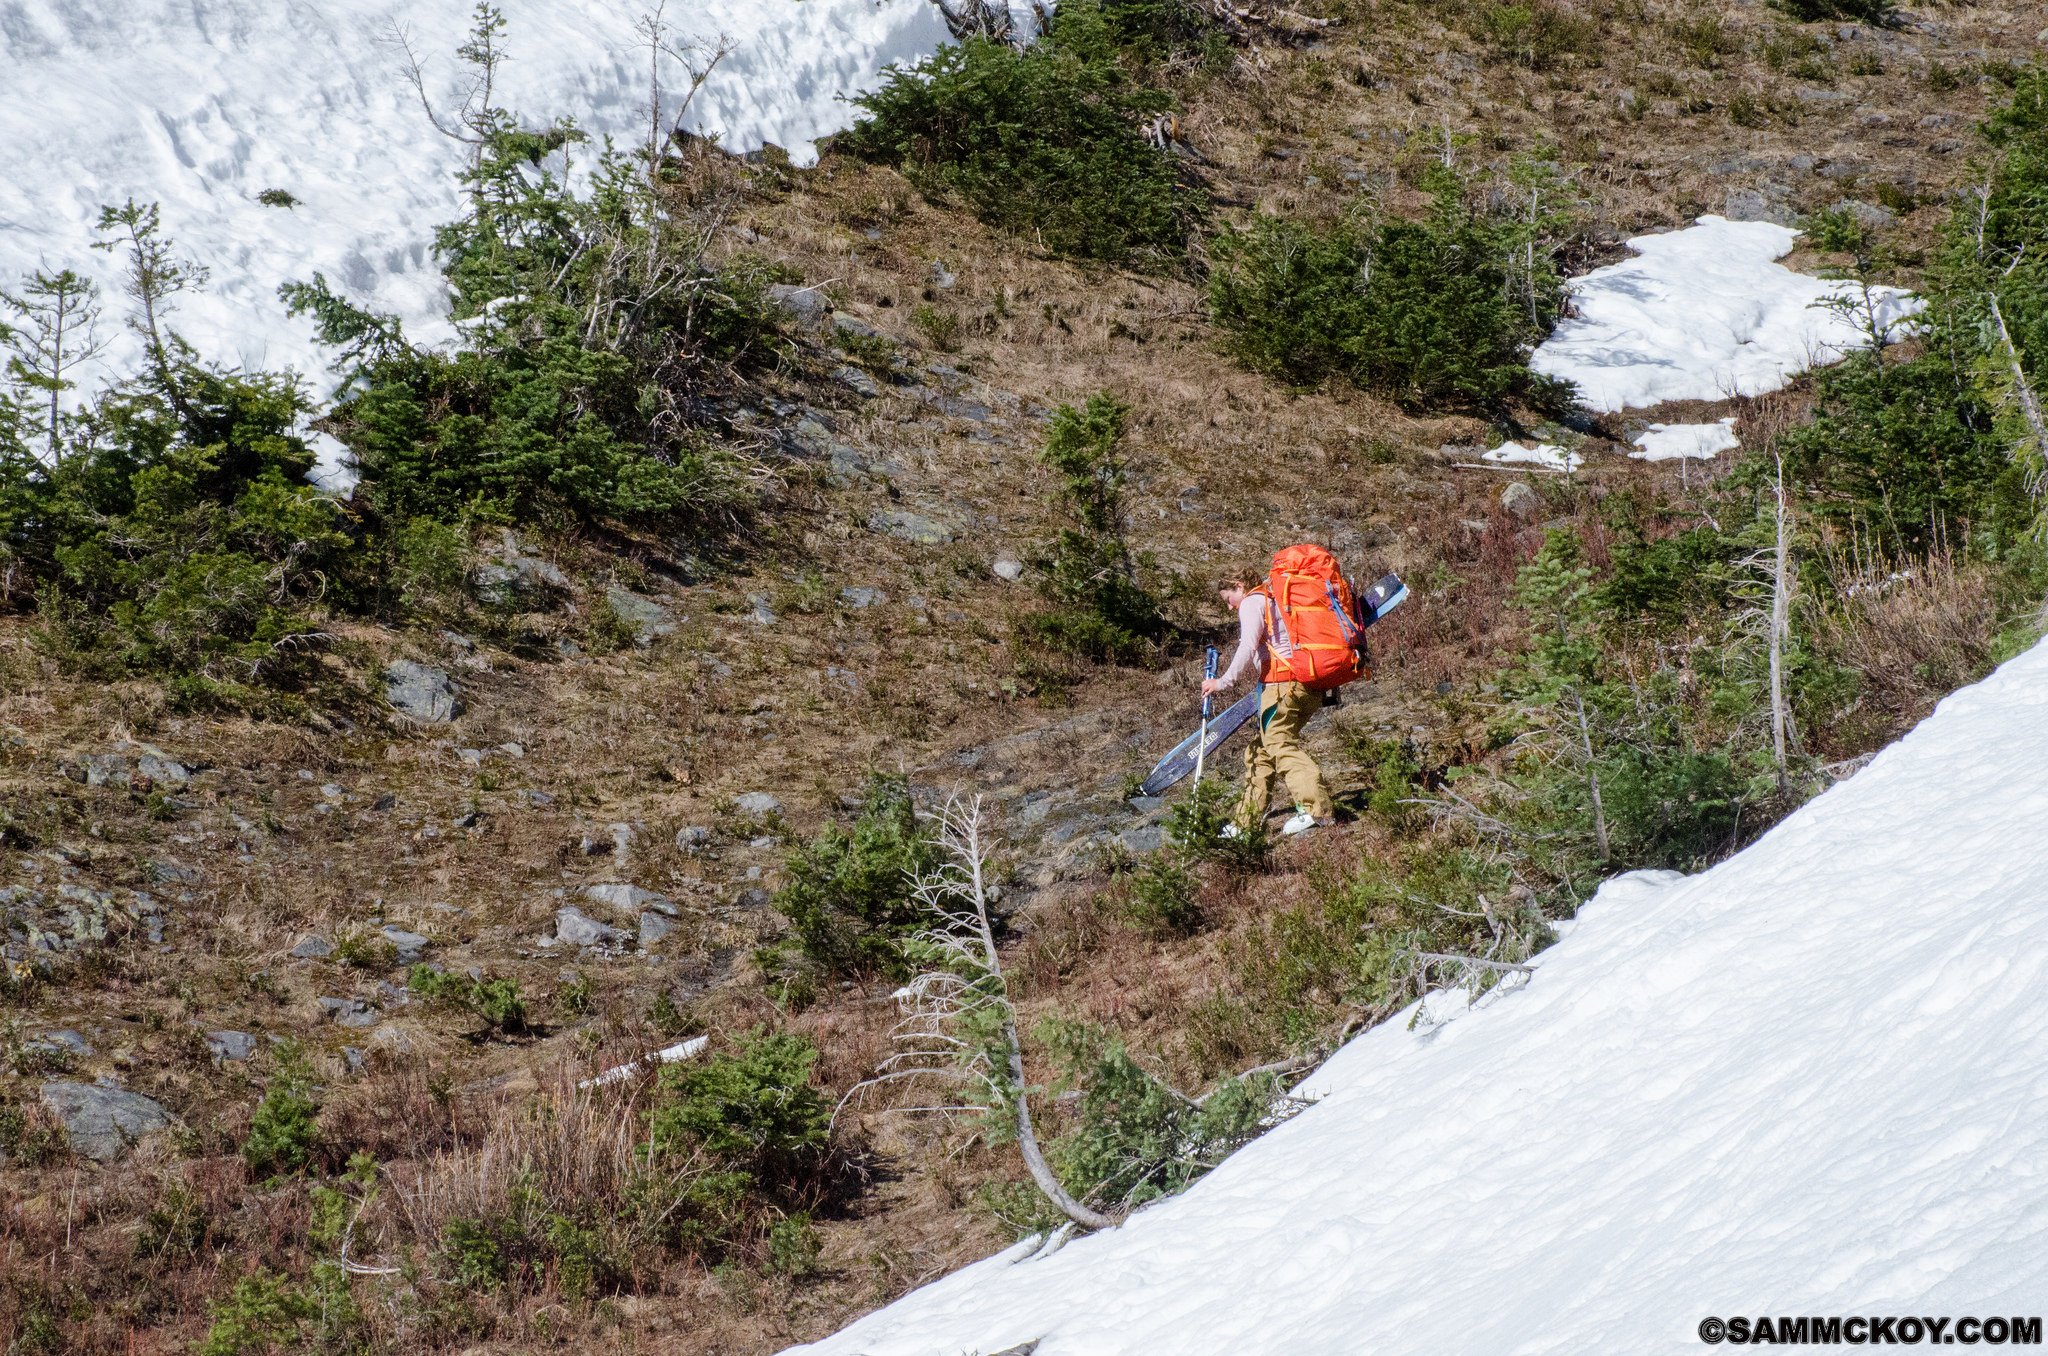 Madeleine crosses an avalanche path that's been stripped of snow.